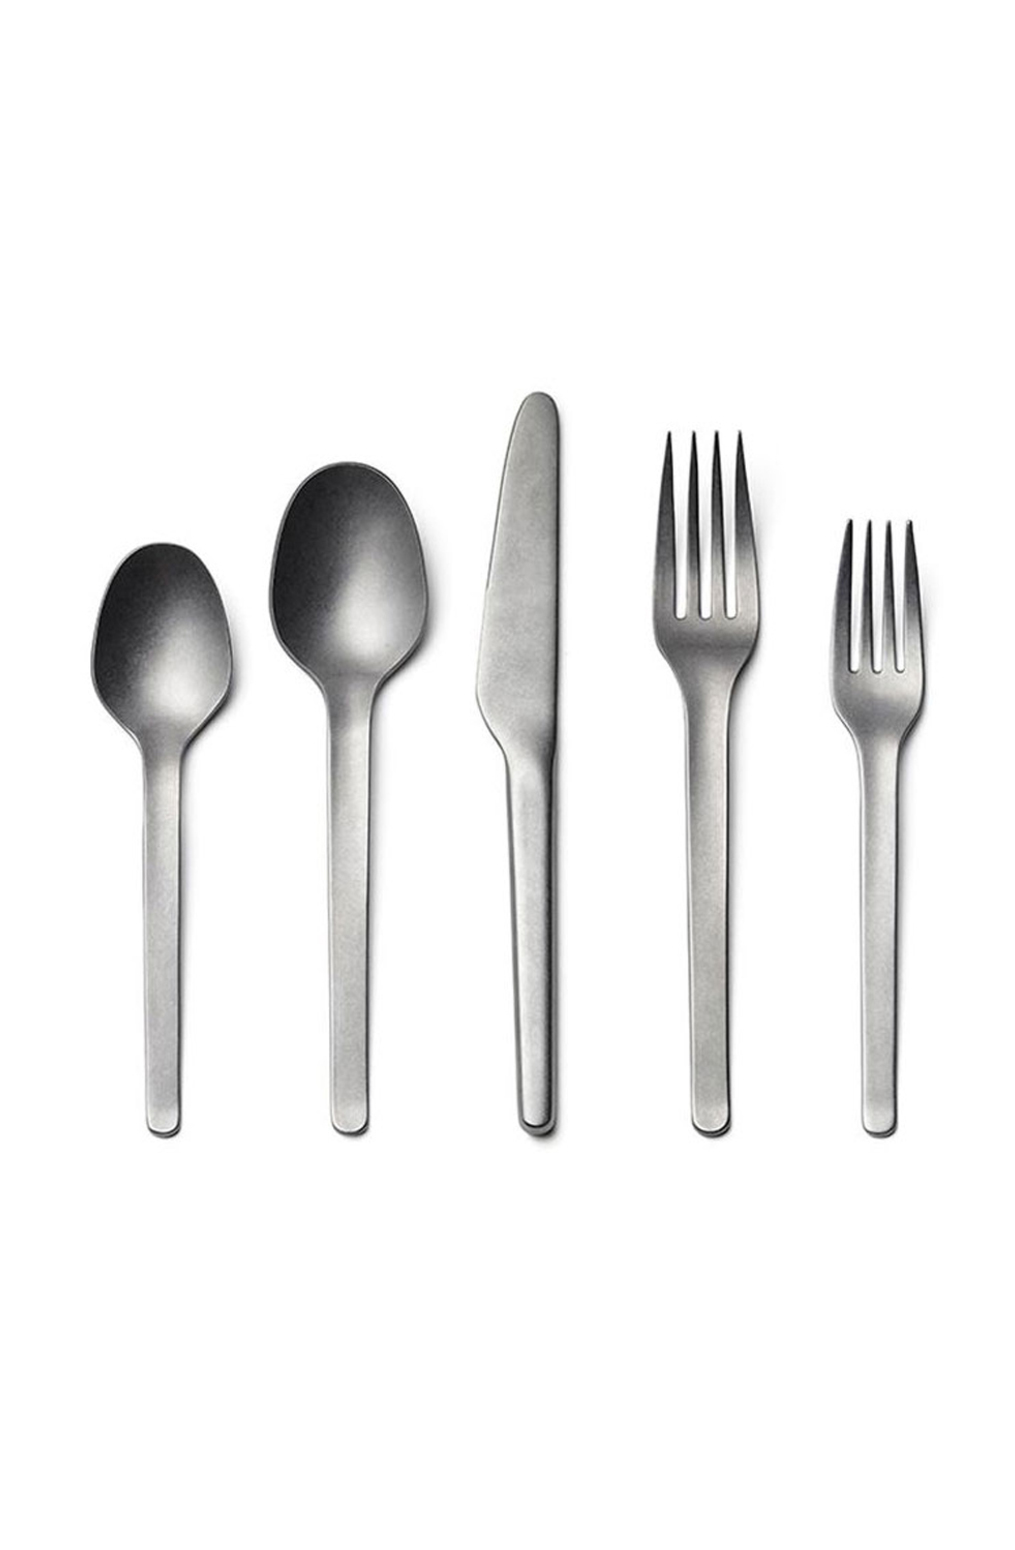 Heath ceramics alabama chanin muir flatware 1